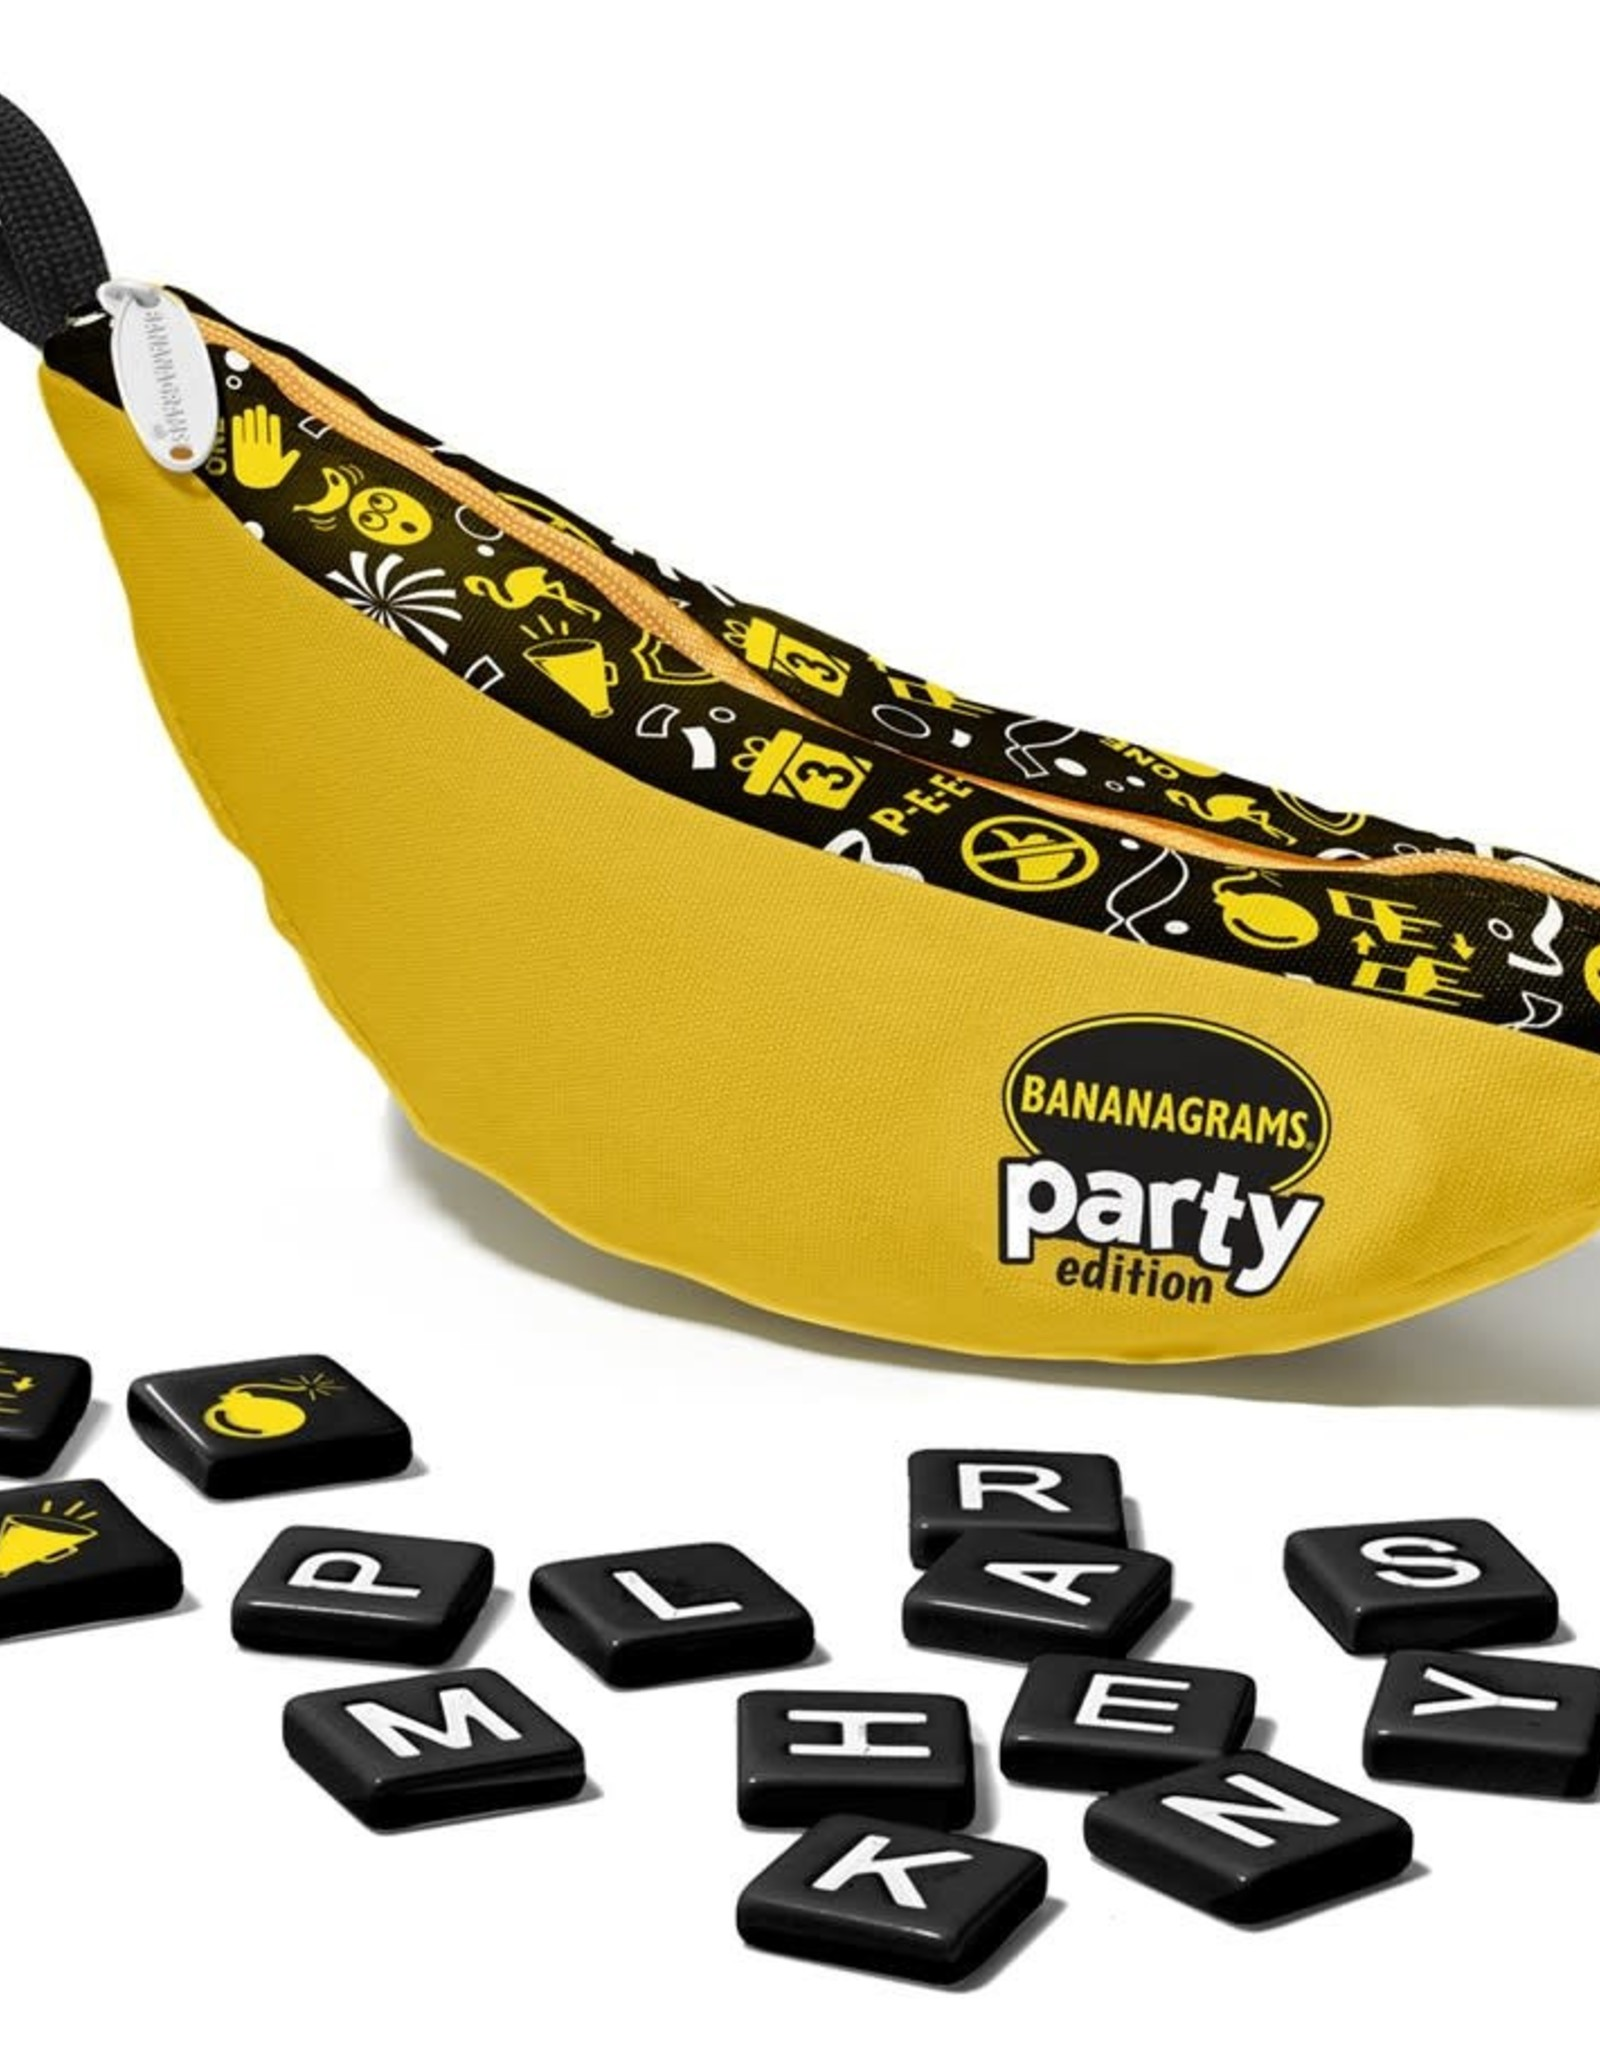 Bananagrams Bananagrams Party